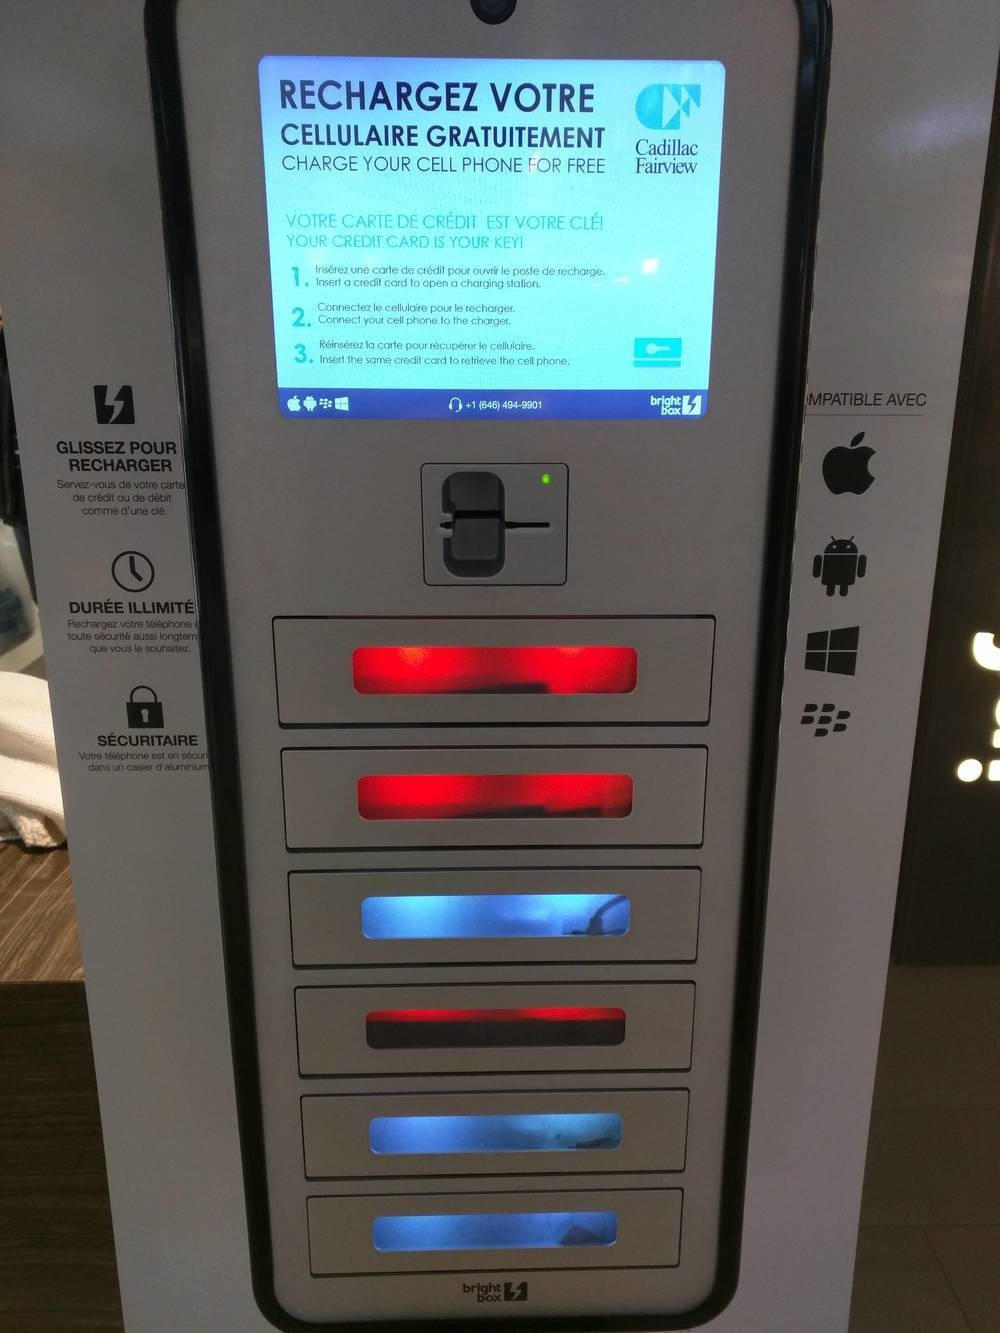 A charging station for mobile phones while you shop.